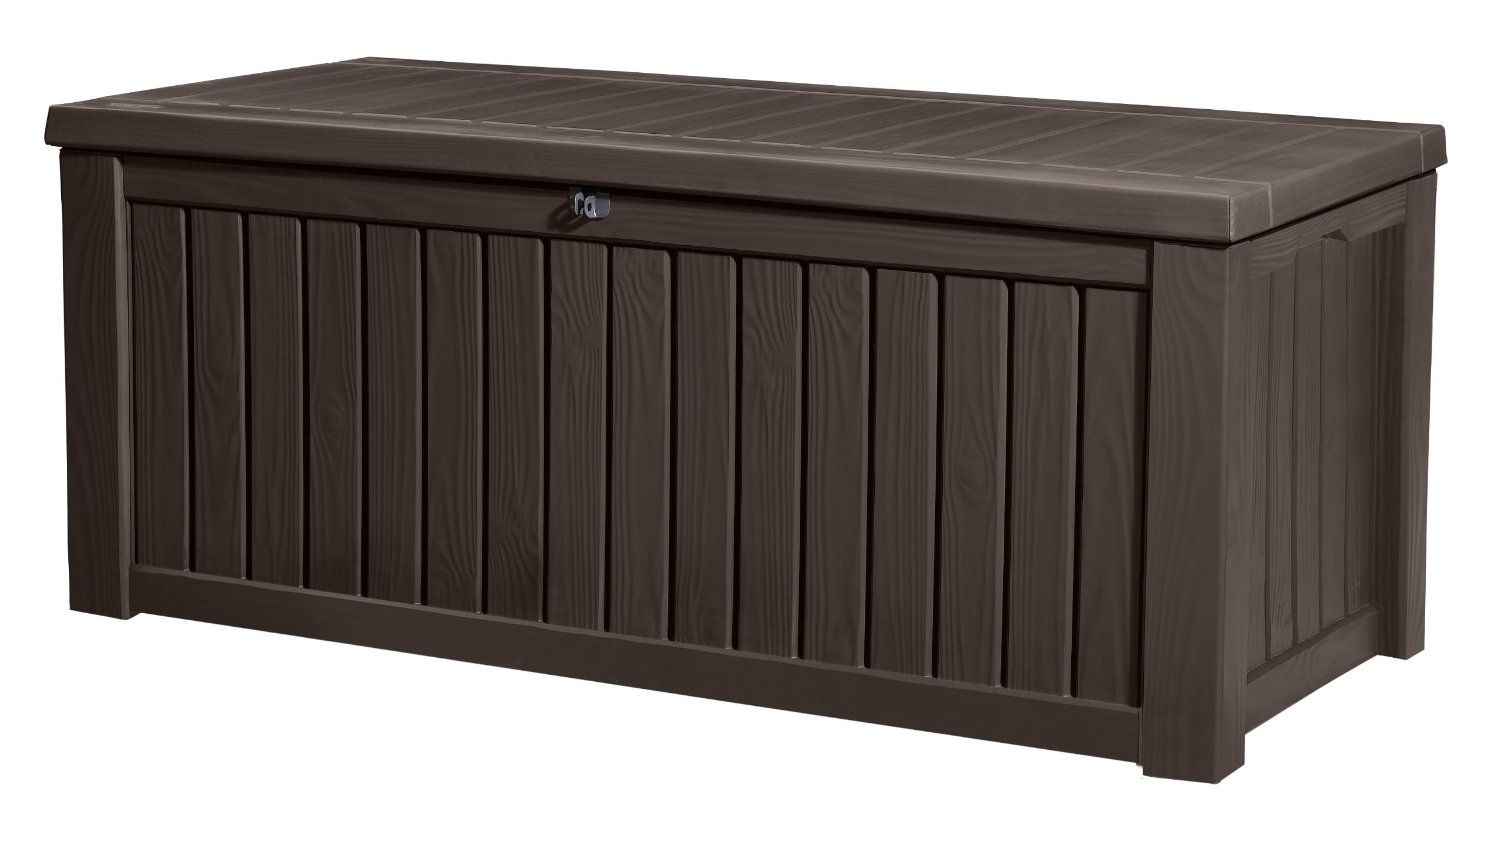 Outdoor Kissenbox Keter Kissenbox Rockwood Braun 570l Amazon De Garten